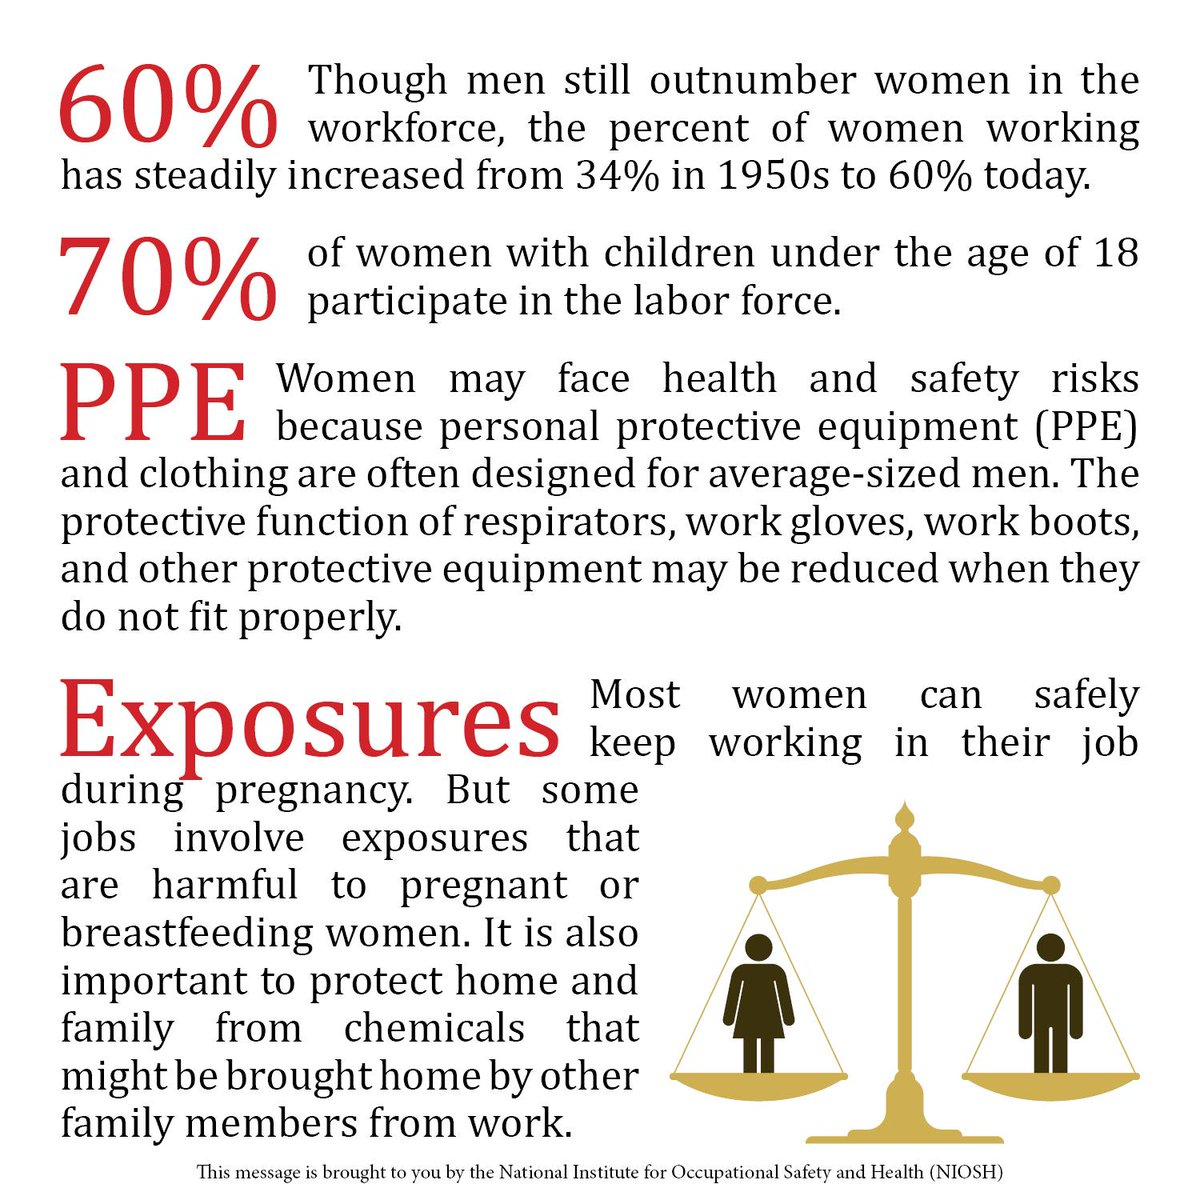 #WomensEqualityDay @NIOSH calls attention to women's health and safety in the workplace http://t.co/t8YnTTcFbl http://t.co/IJF19j9Wqi